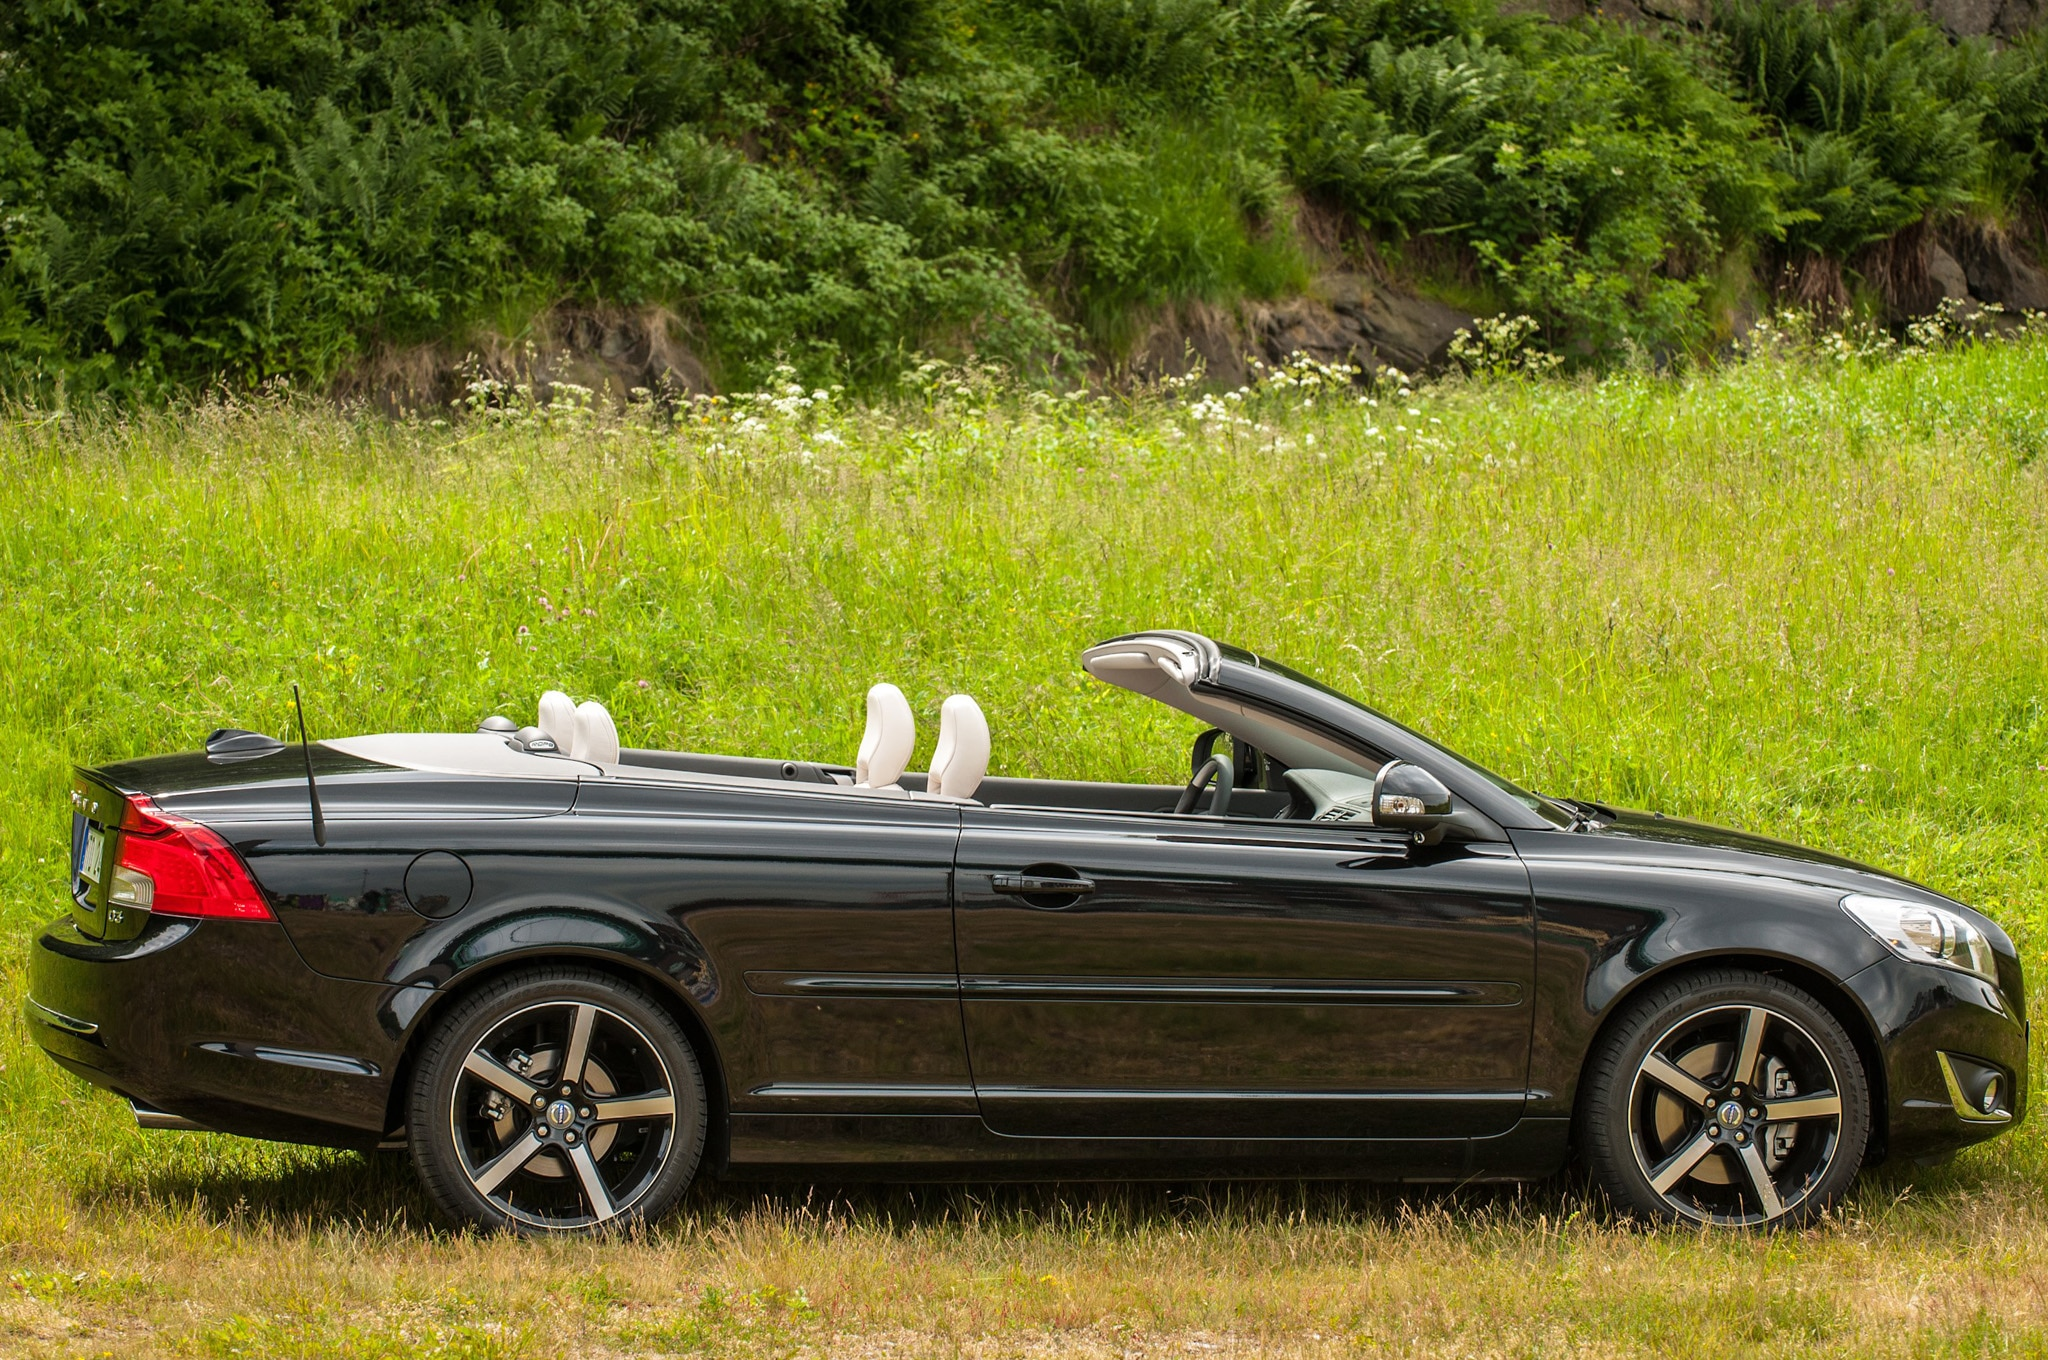 Volvo C70 Discontinued For 2014 Replacement In The Works